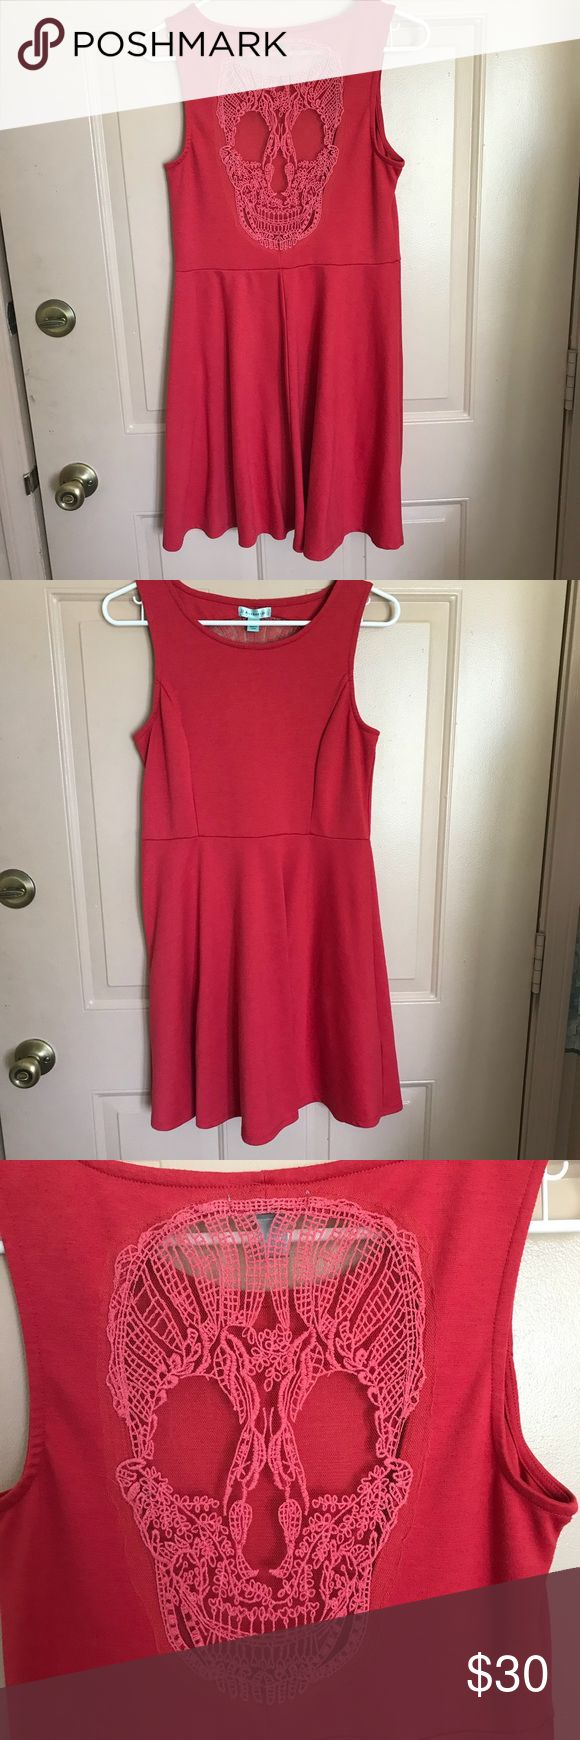 JJ Authentic Skull Skater Dress - Red - Size L This red great skater dress from JJ Authentic has a classic style and an embroidered netting skull on the back.  Size Large  80% polyester 15% rayon 5% spandex Exclusive of decoration  Great stretchy material for a flattering comfortable fit. Dresses Midi